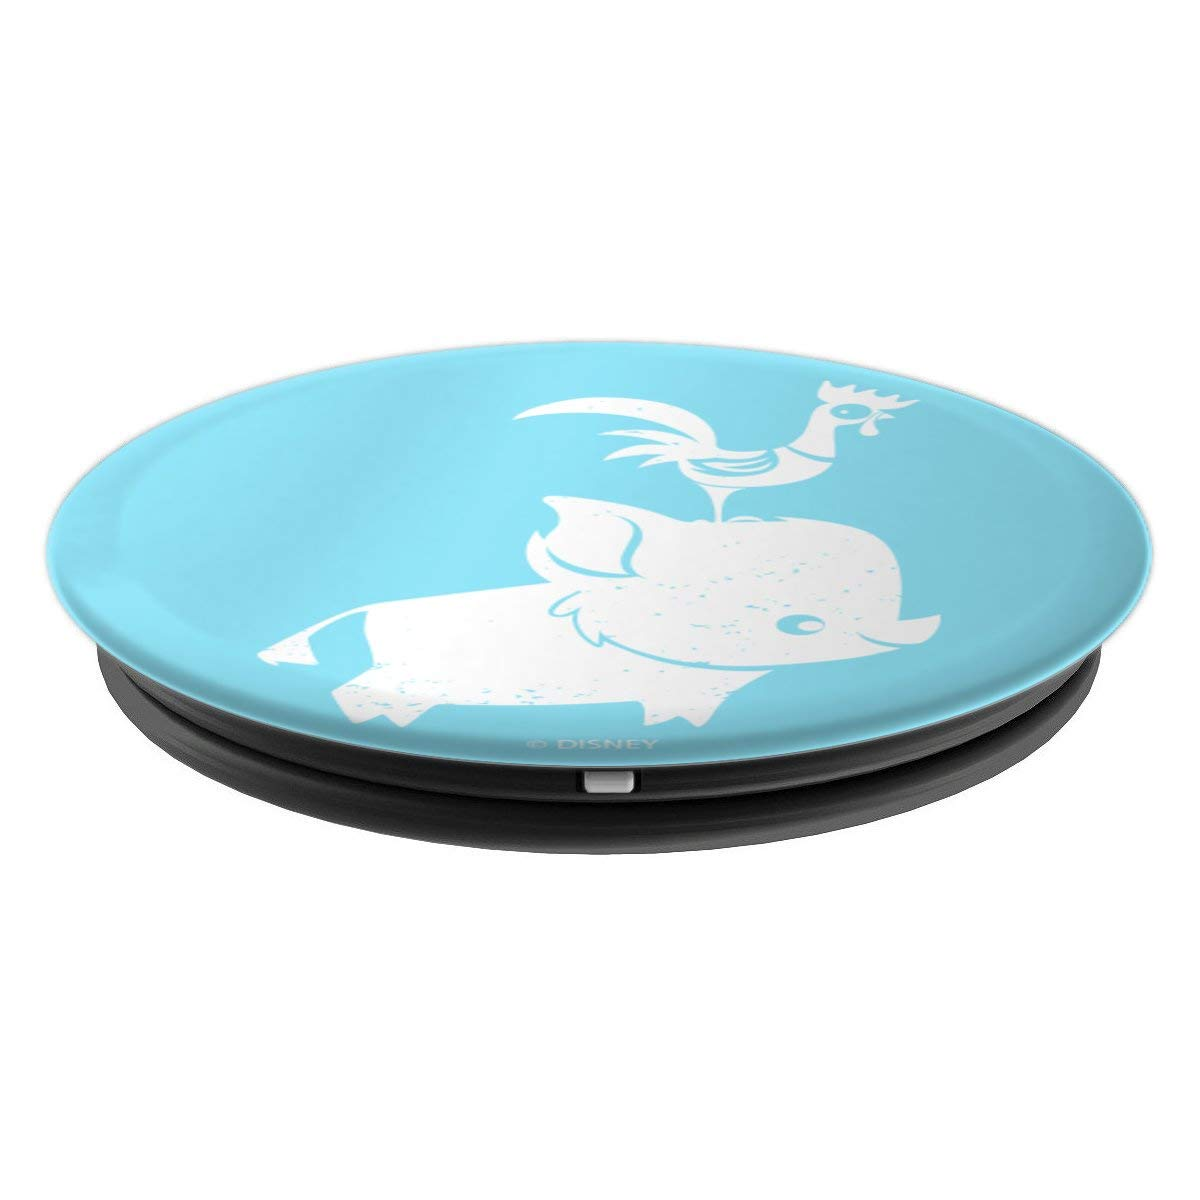 Amazon.com: Disney Moana Pua And Hei Hei Simple Sketch - PopSockets Grip and Stand for Phones and Tablets: Cell Phones & Accessories